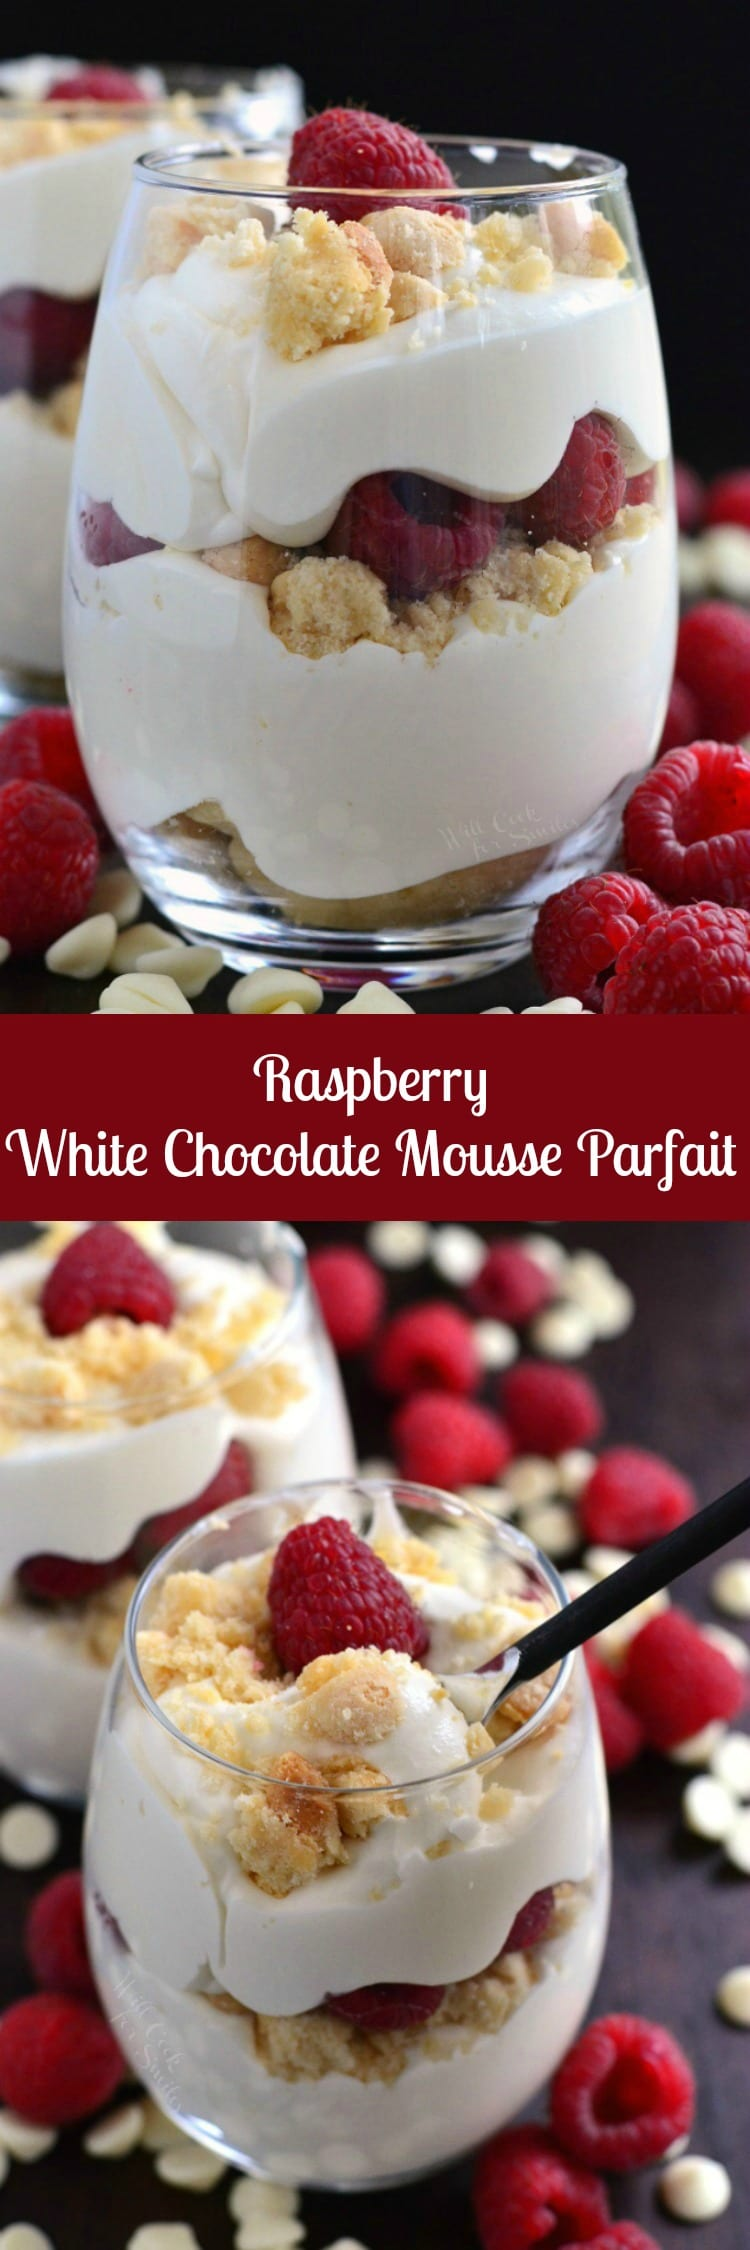 Easy Raspberry White Chocolate Mousse Parfait. This is an easy dessert for any special occasion.